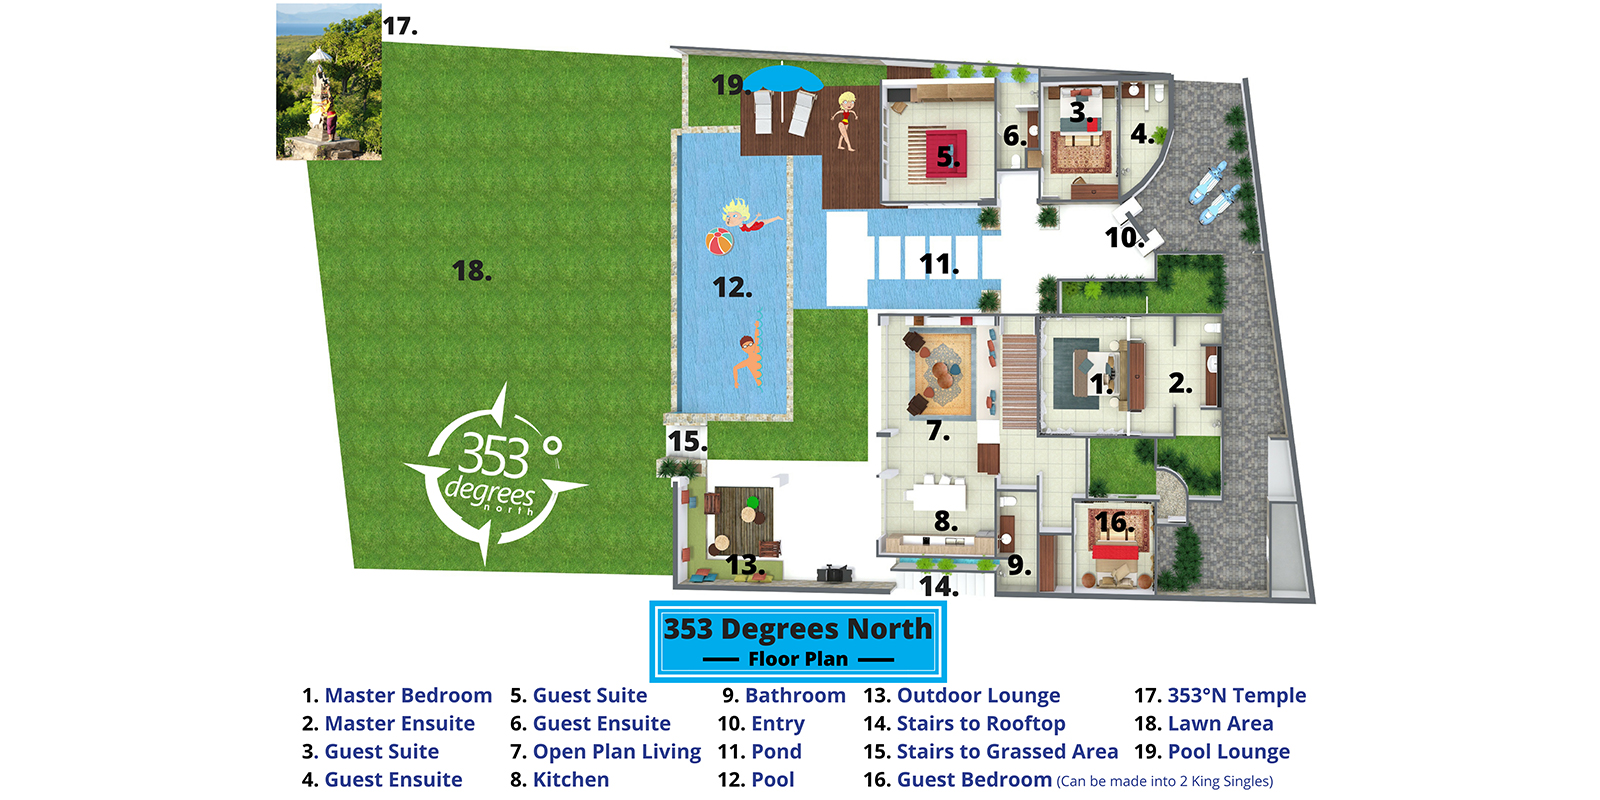 353 Degrees North Floor Plan | Nusa Lembongan, Bali